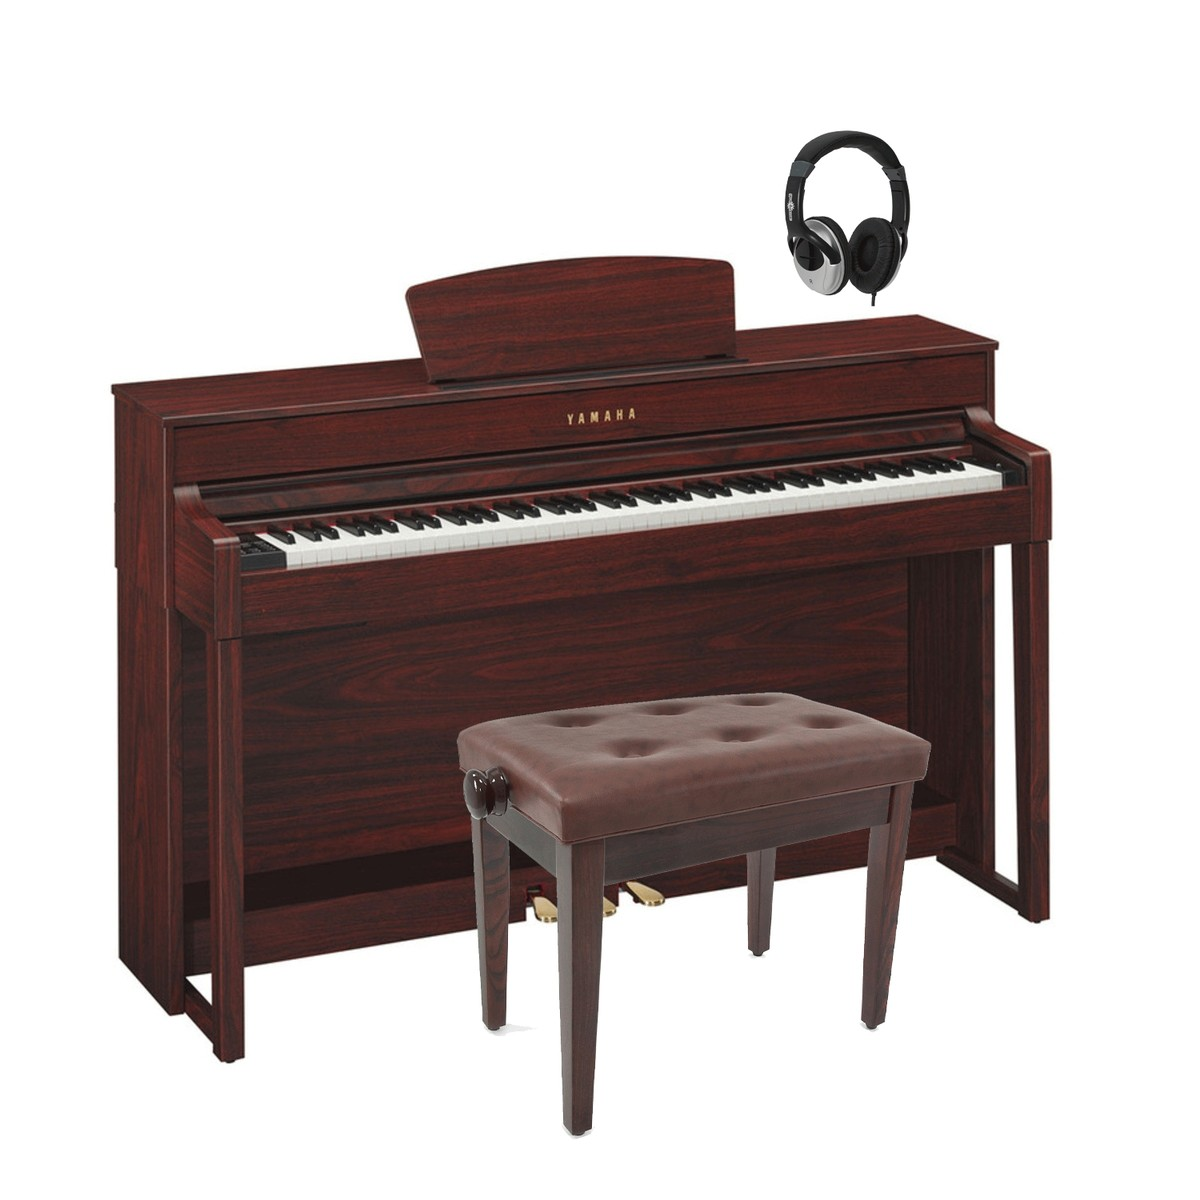 yamaha clp535 clavinova digital piano mahogany package deal at. Black Bedroom Furniture Sets. Home Design Ideas